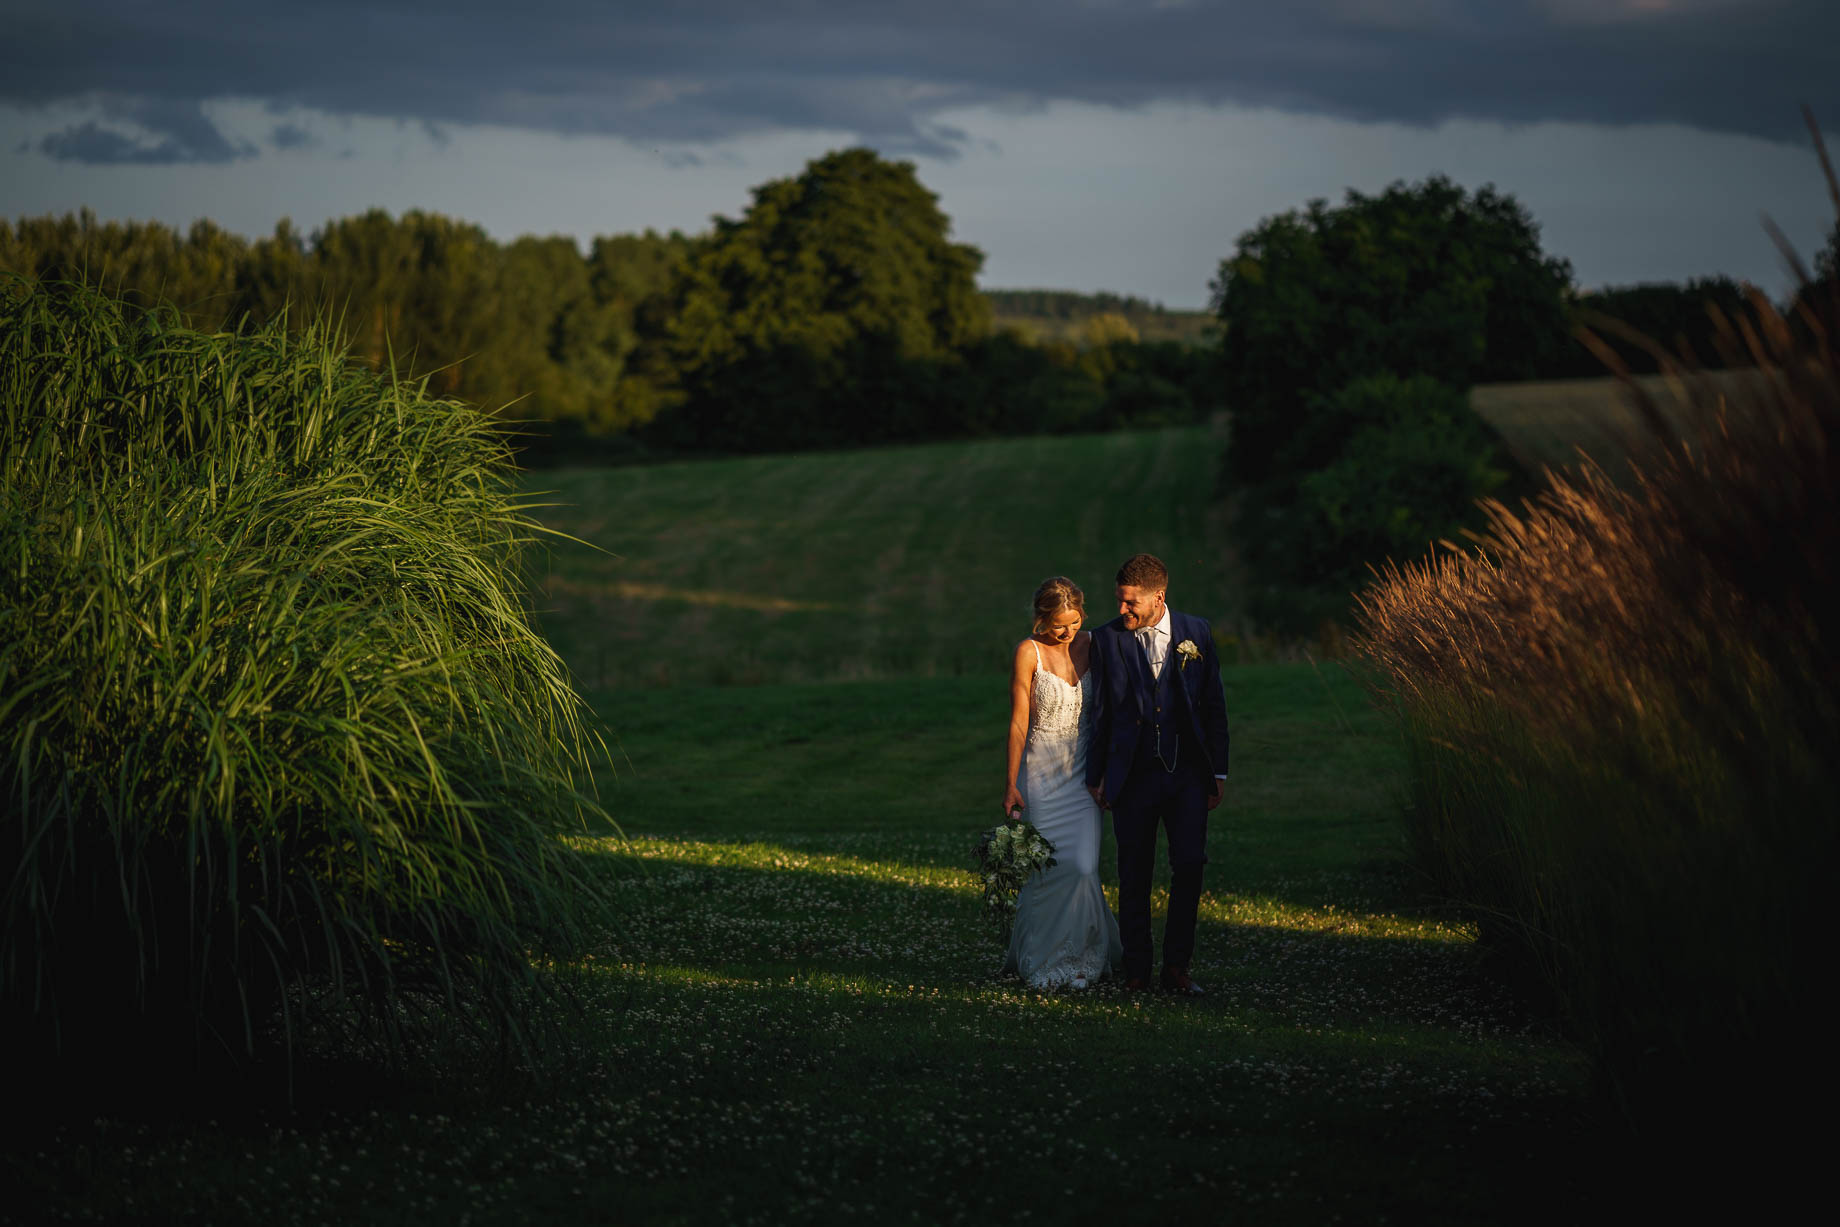 Surrey wedding photography - Guy Collier Photography